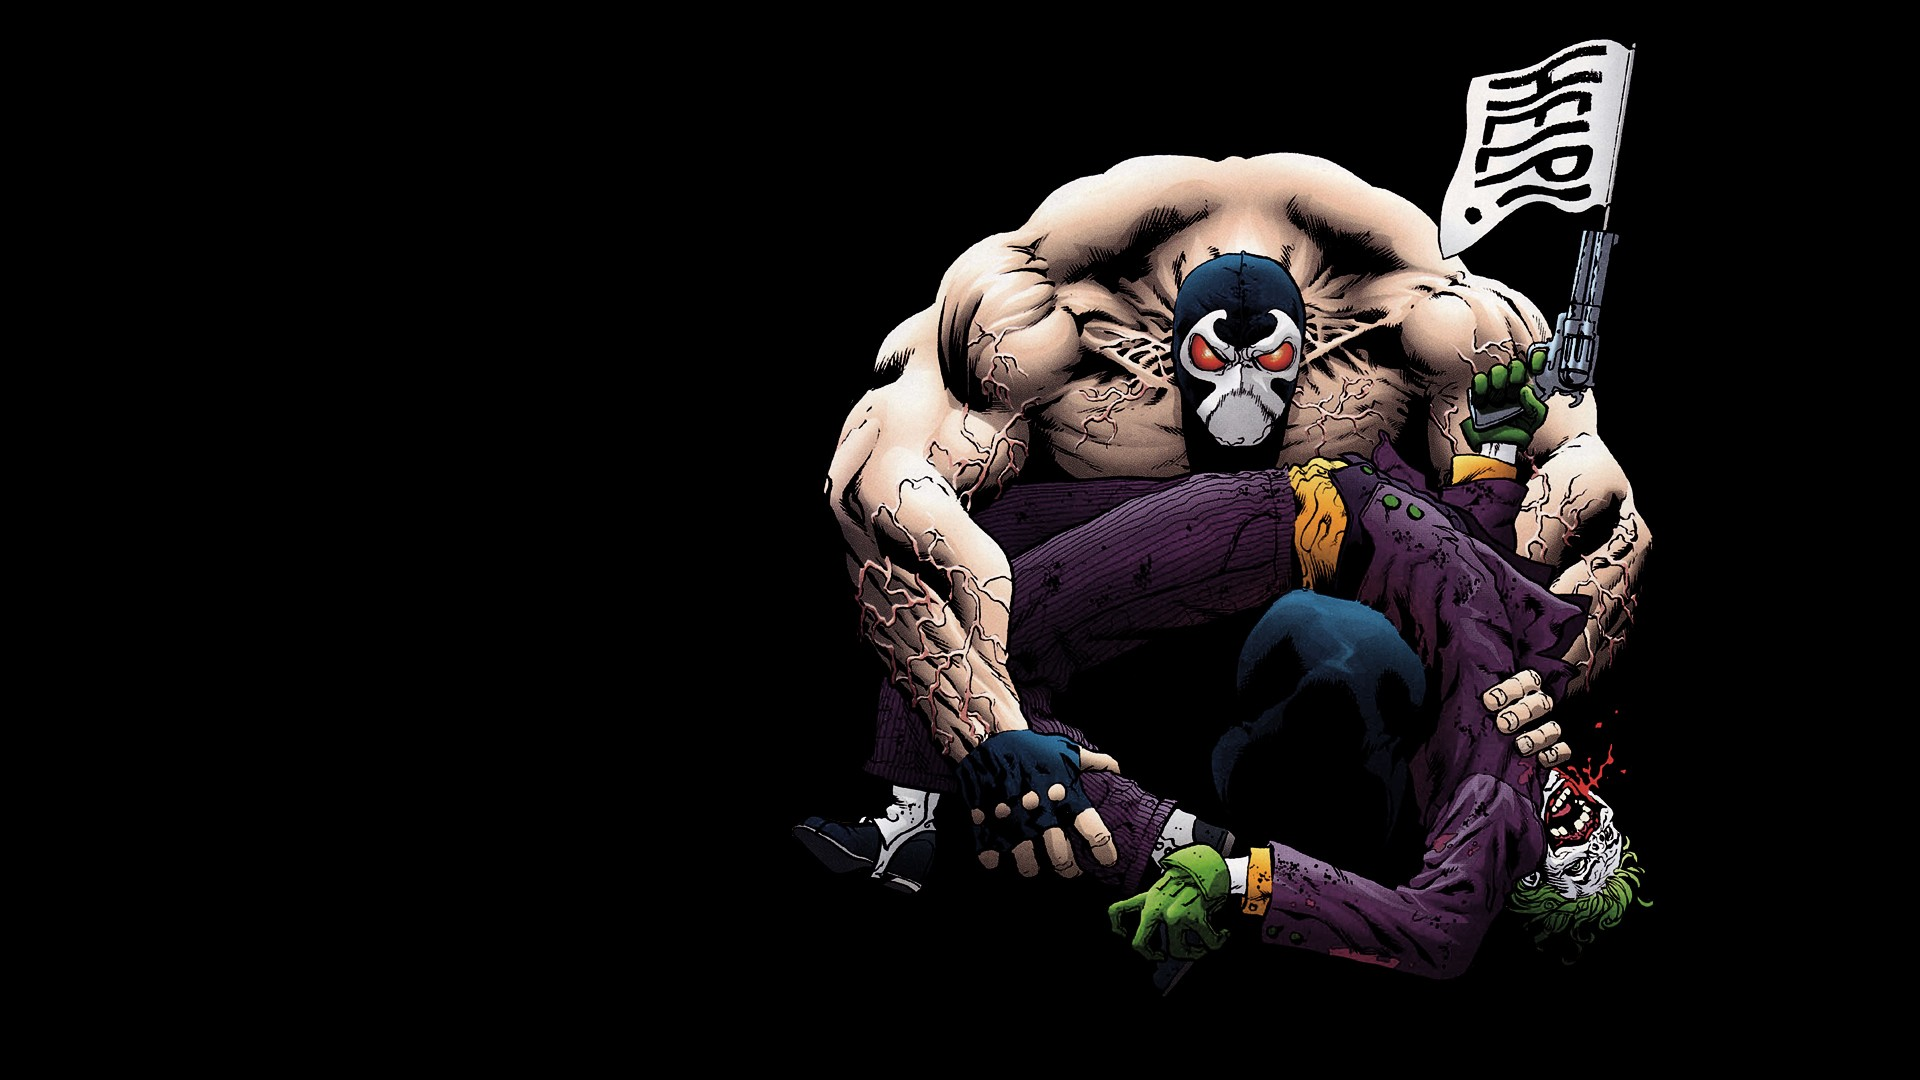 Joker Wallpapers Bane and Joker Myspace Backgrounds Bane and Joker 1920x1080